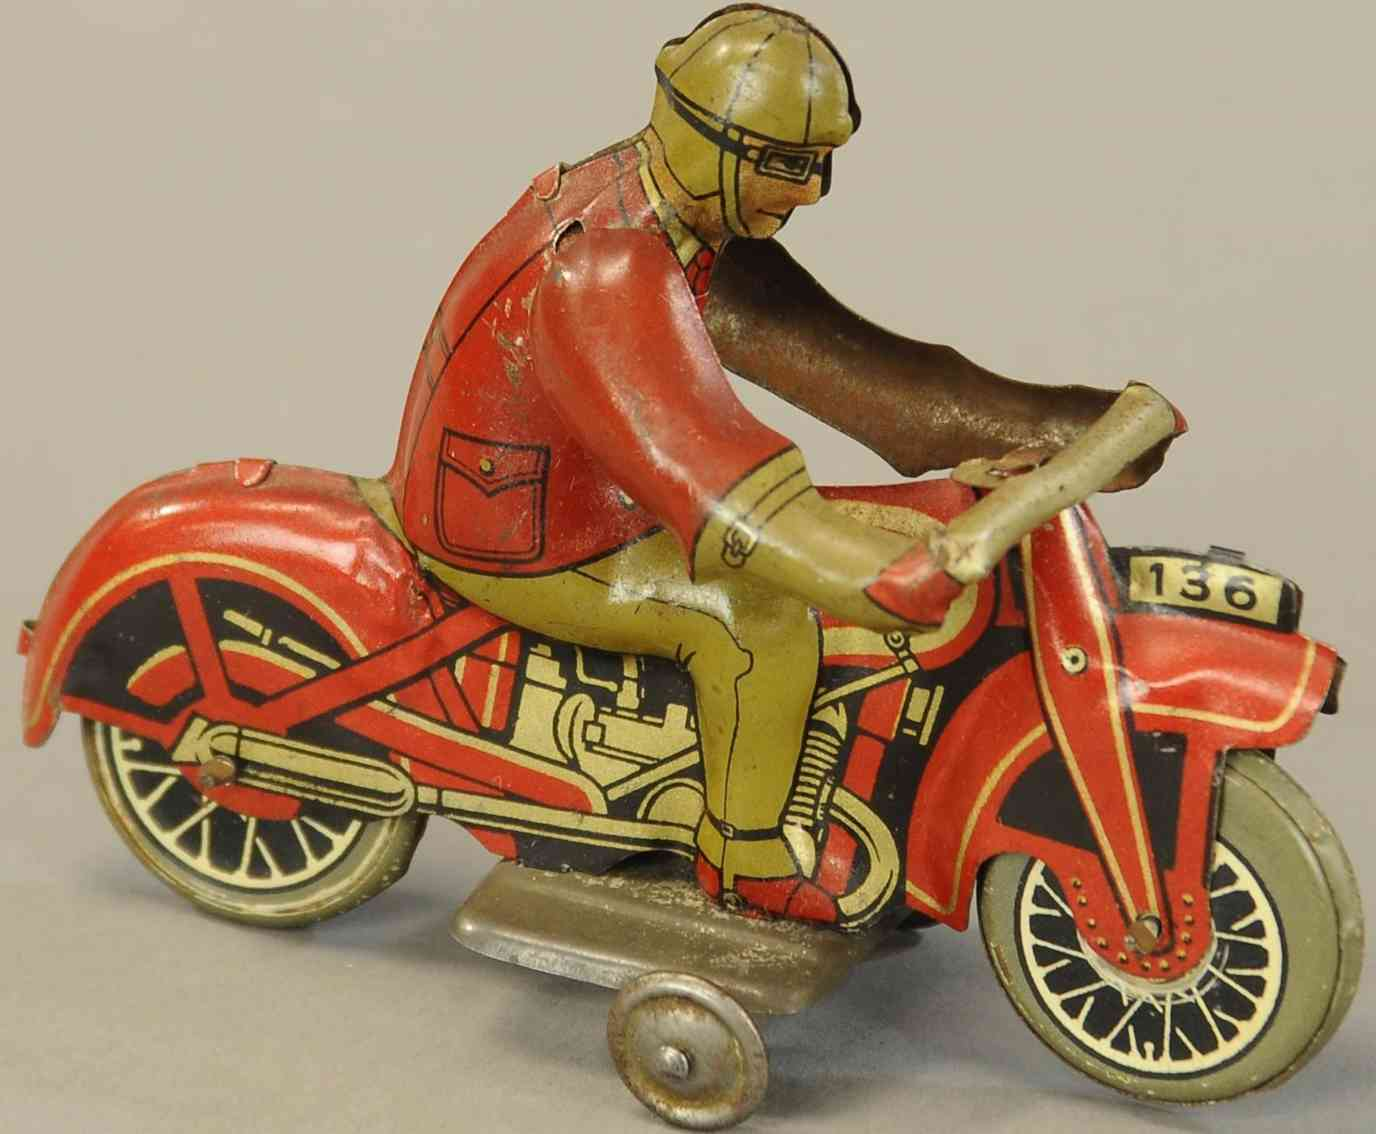 136 penny toy motorcycle with driver in red